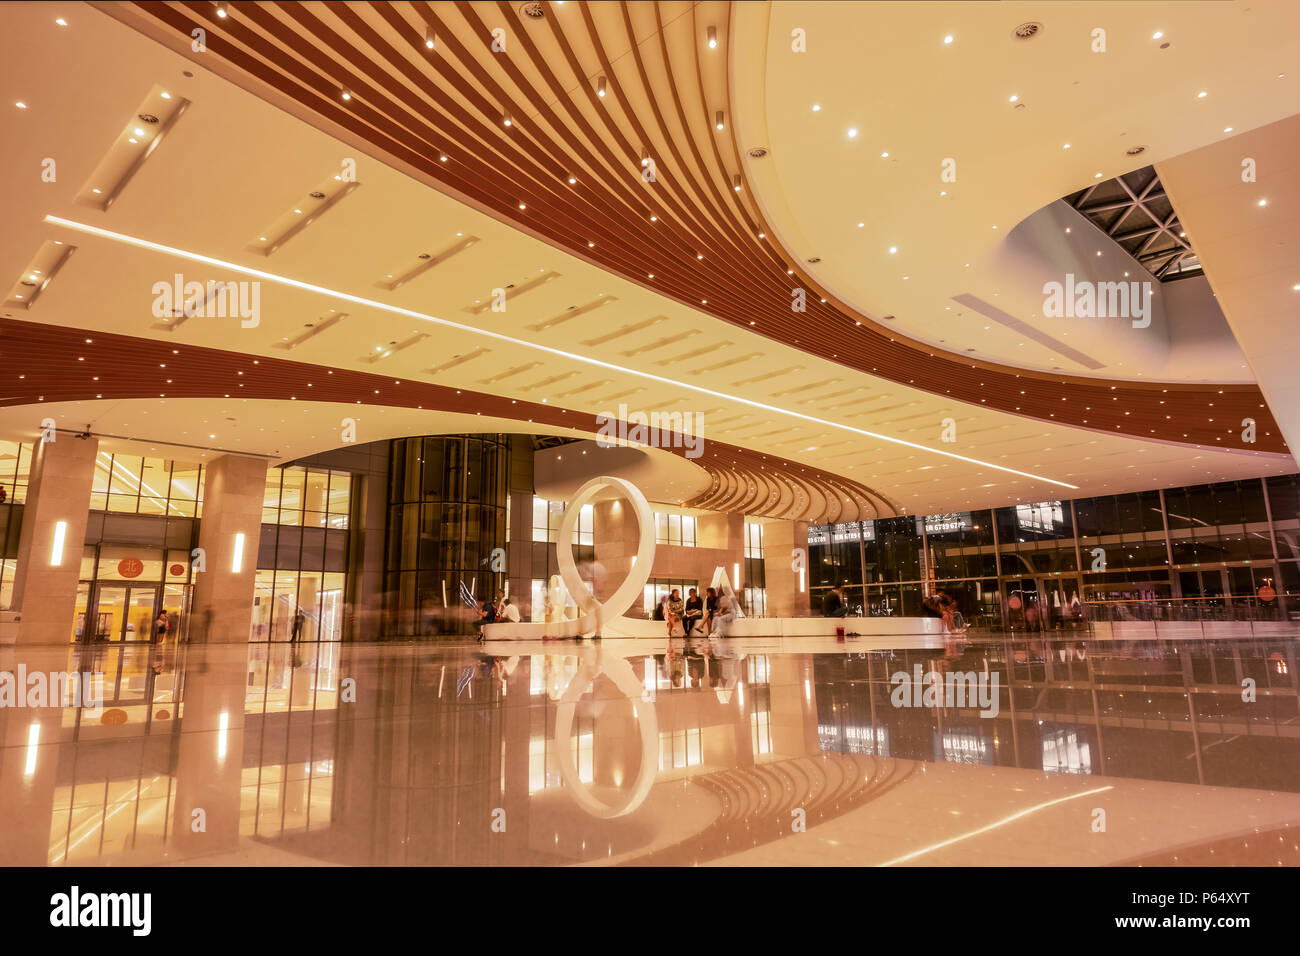 The design of the Shopping Mall and Inner Space - Stock Image